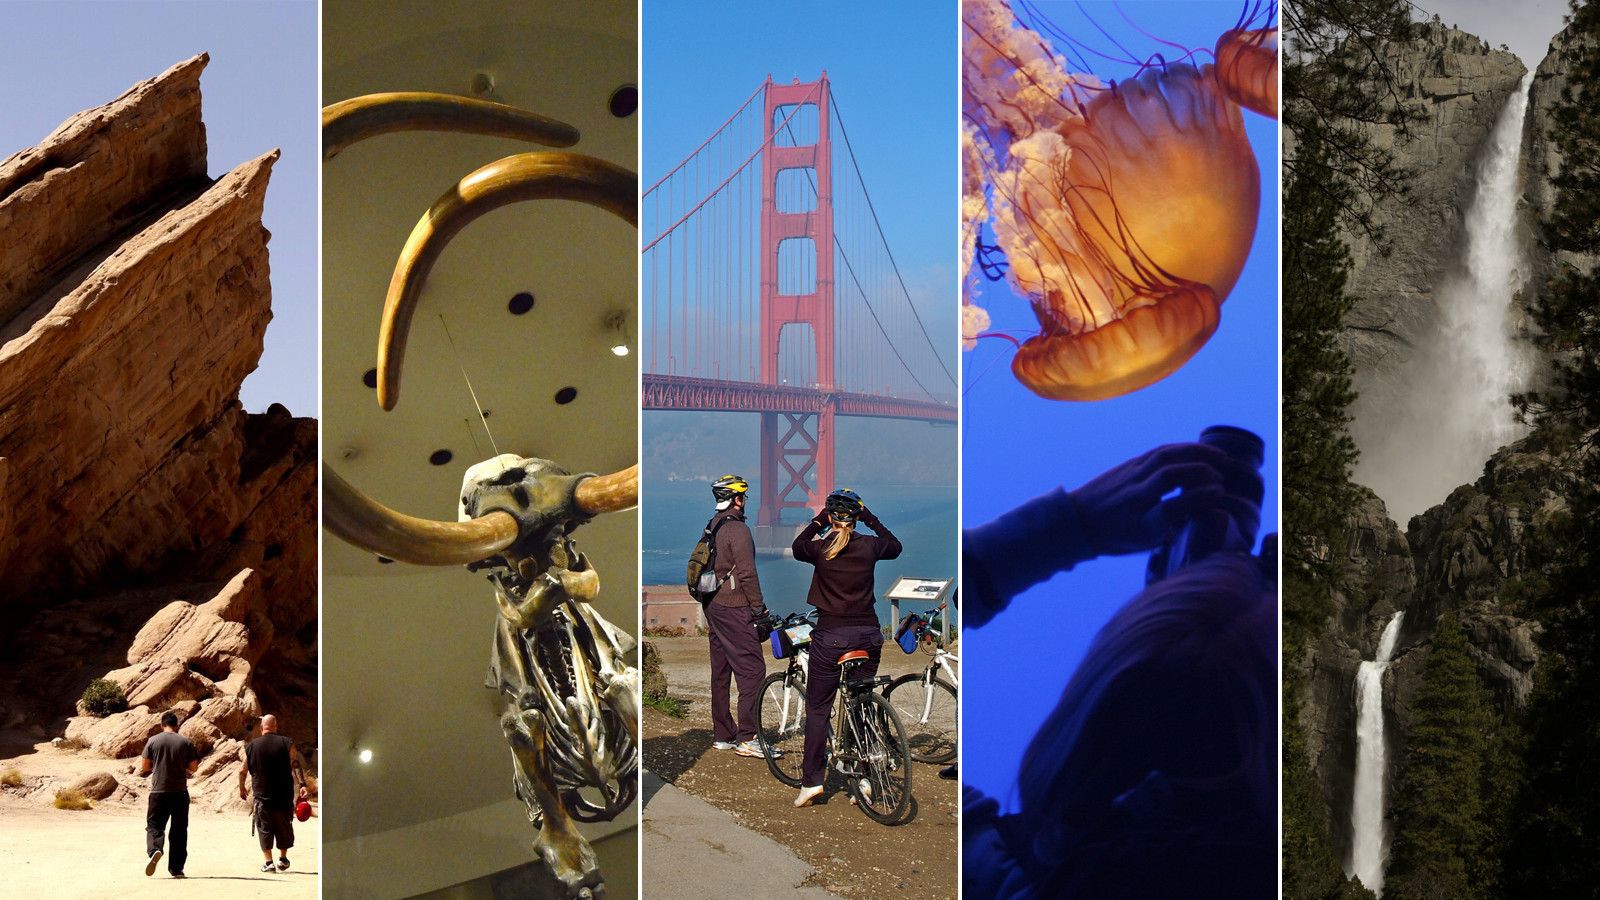 sale retailer 40cf0 3bf59 Here s our growing guide to essential California adventures, easy to edgy.  We ll be adding to it daily all year. And we won t suggest an adventure  unless ...